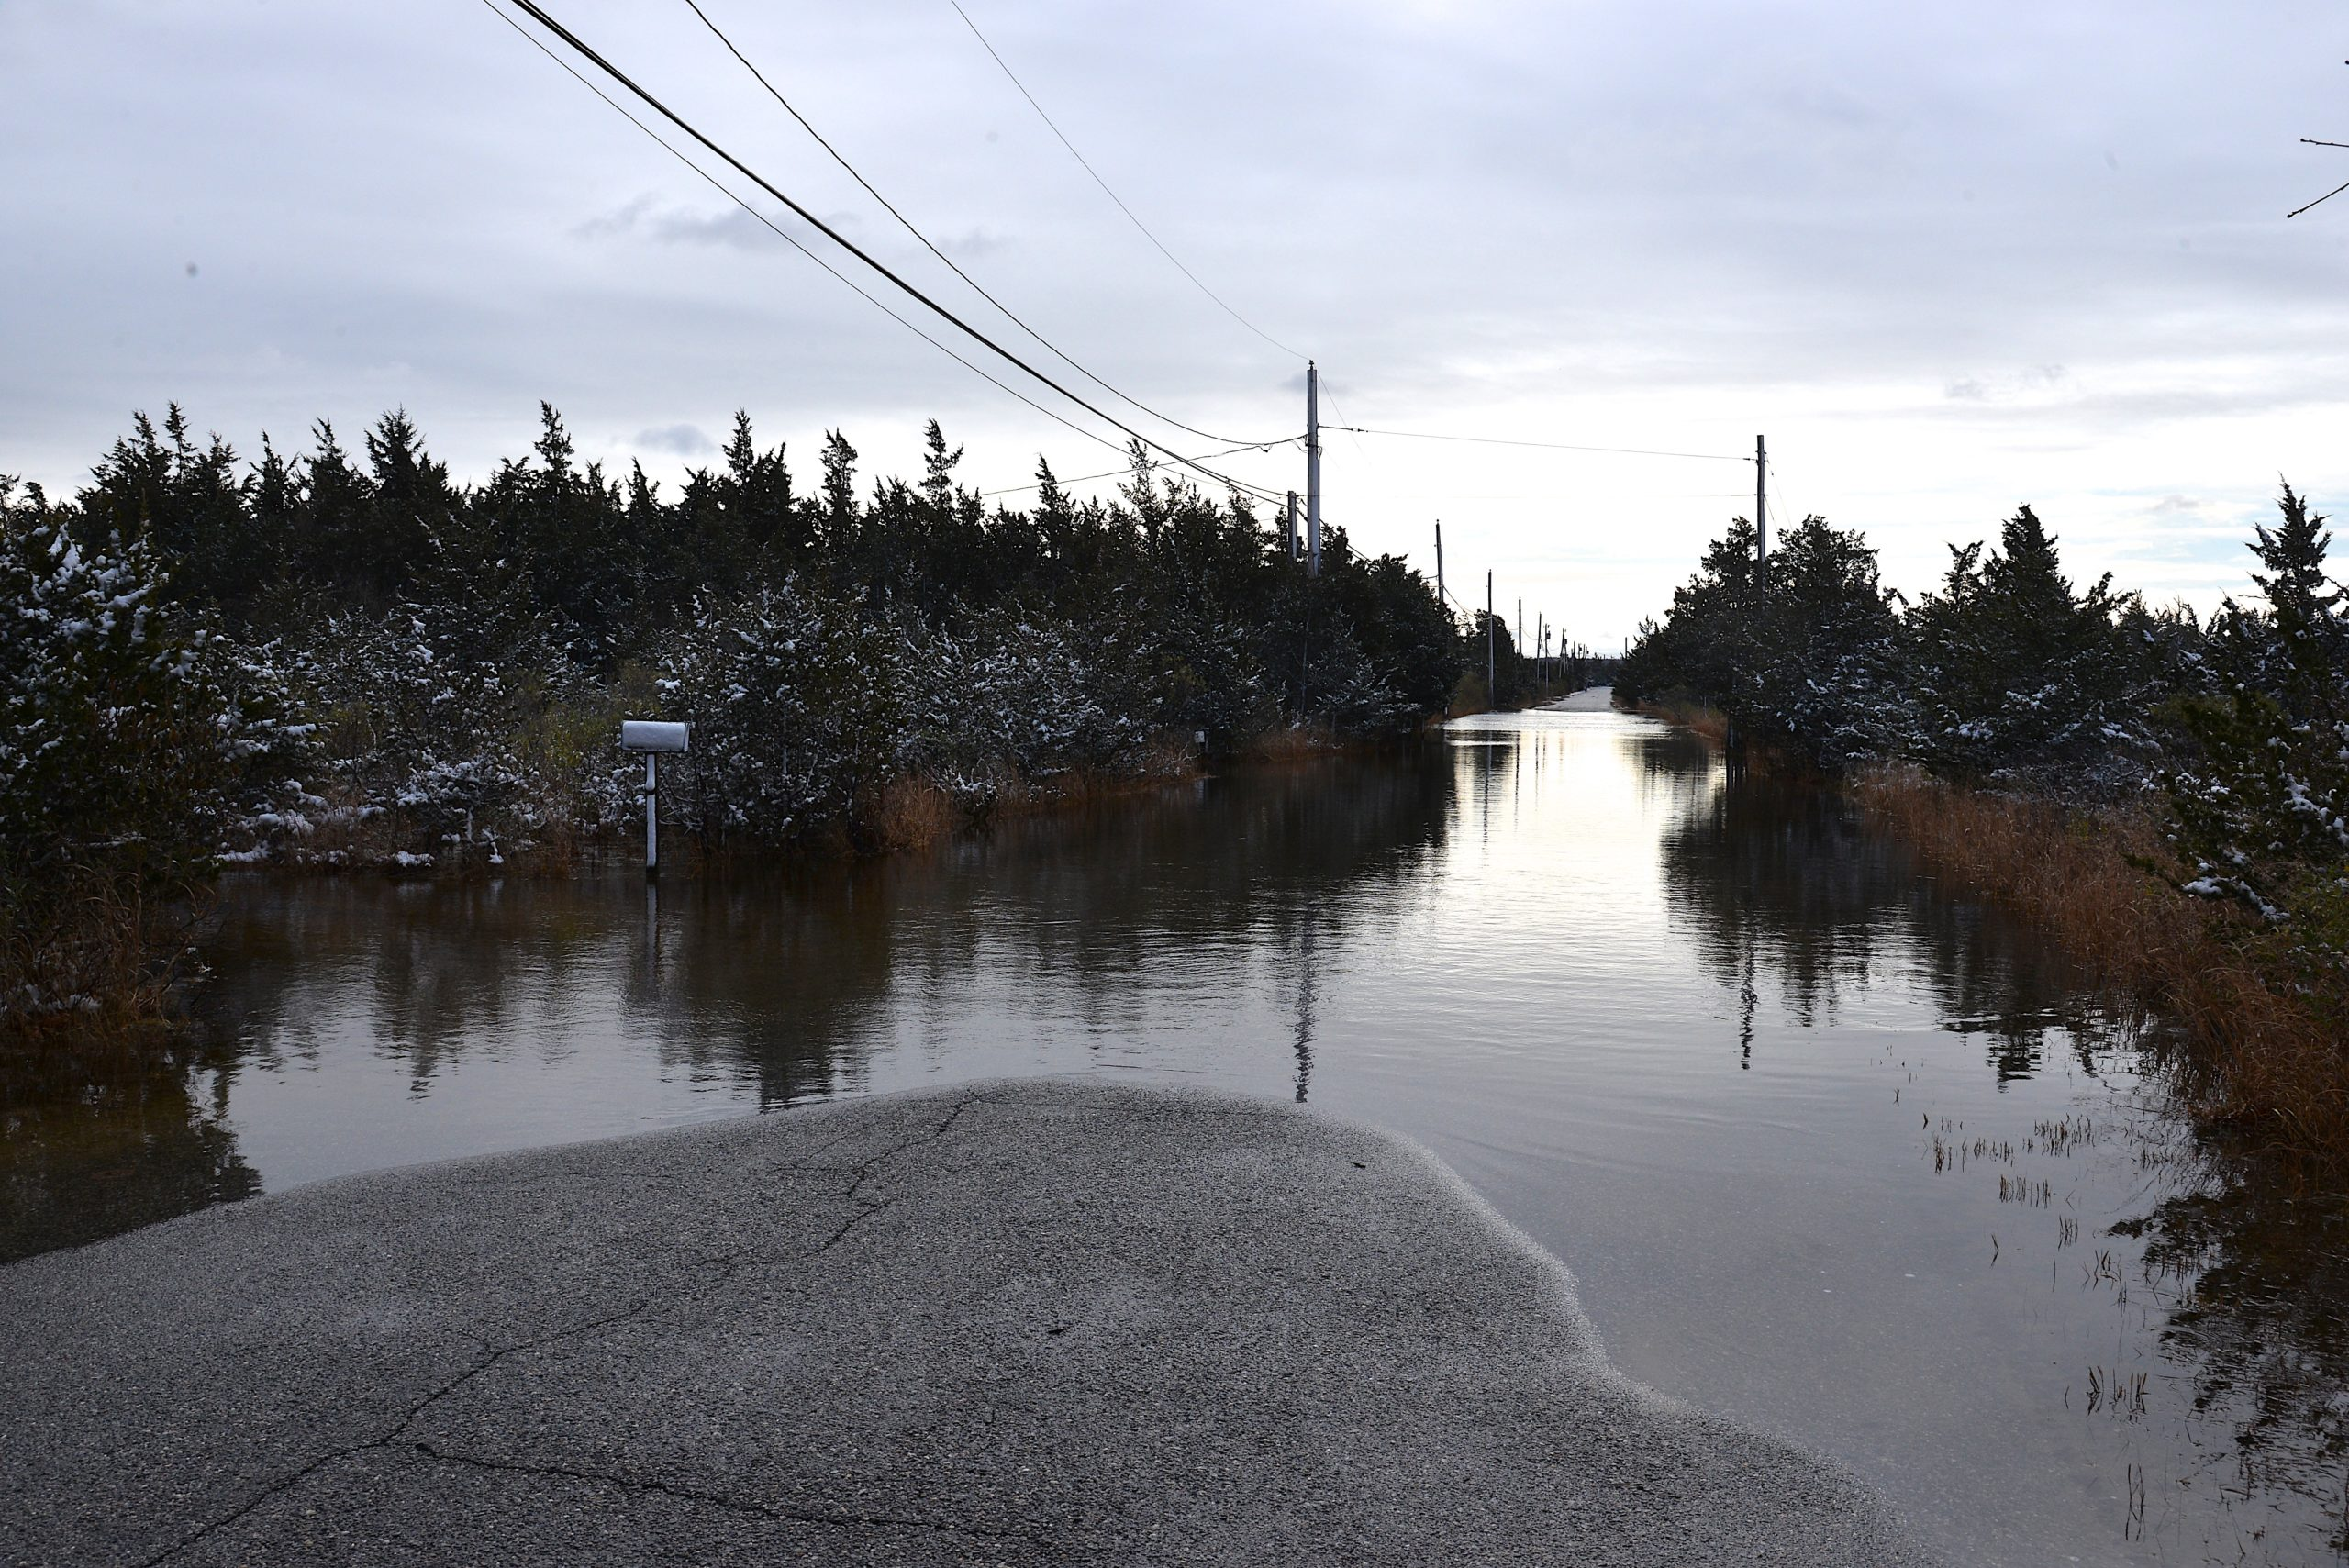 Gerard Drive, which already suffers from chronic flooding during storm tides, is one of the areas consultants are weighing how residents can manage living in a threatened area as sea levels rise.  KYRIL BROMLEY